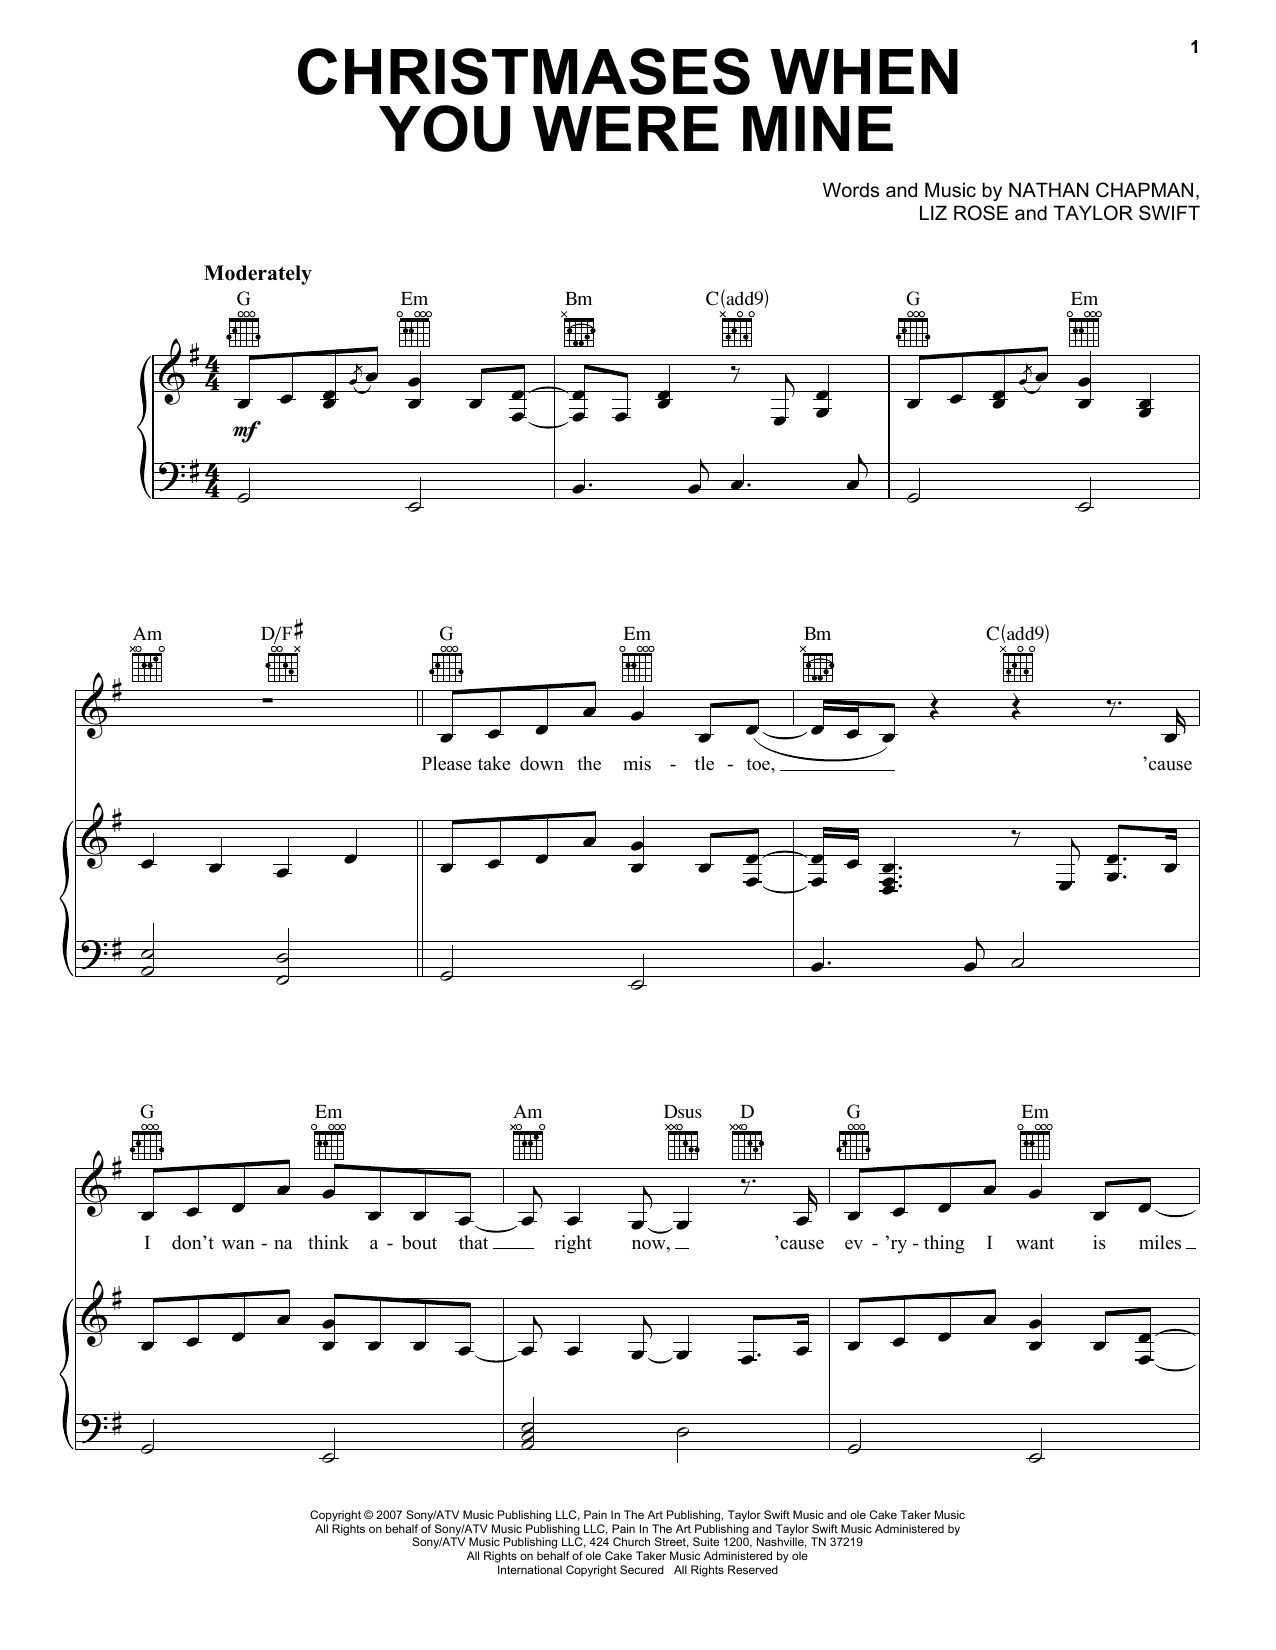 Taylor Swift Christmases When You Were Mine sheet music notes and chords. Download Printable PDF.